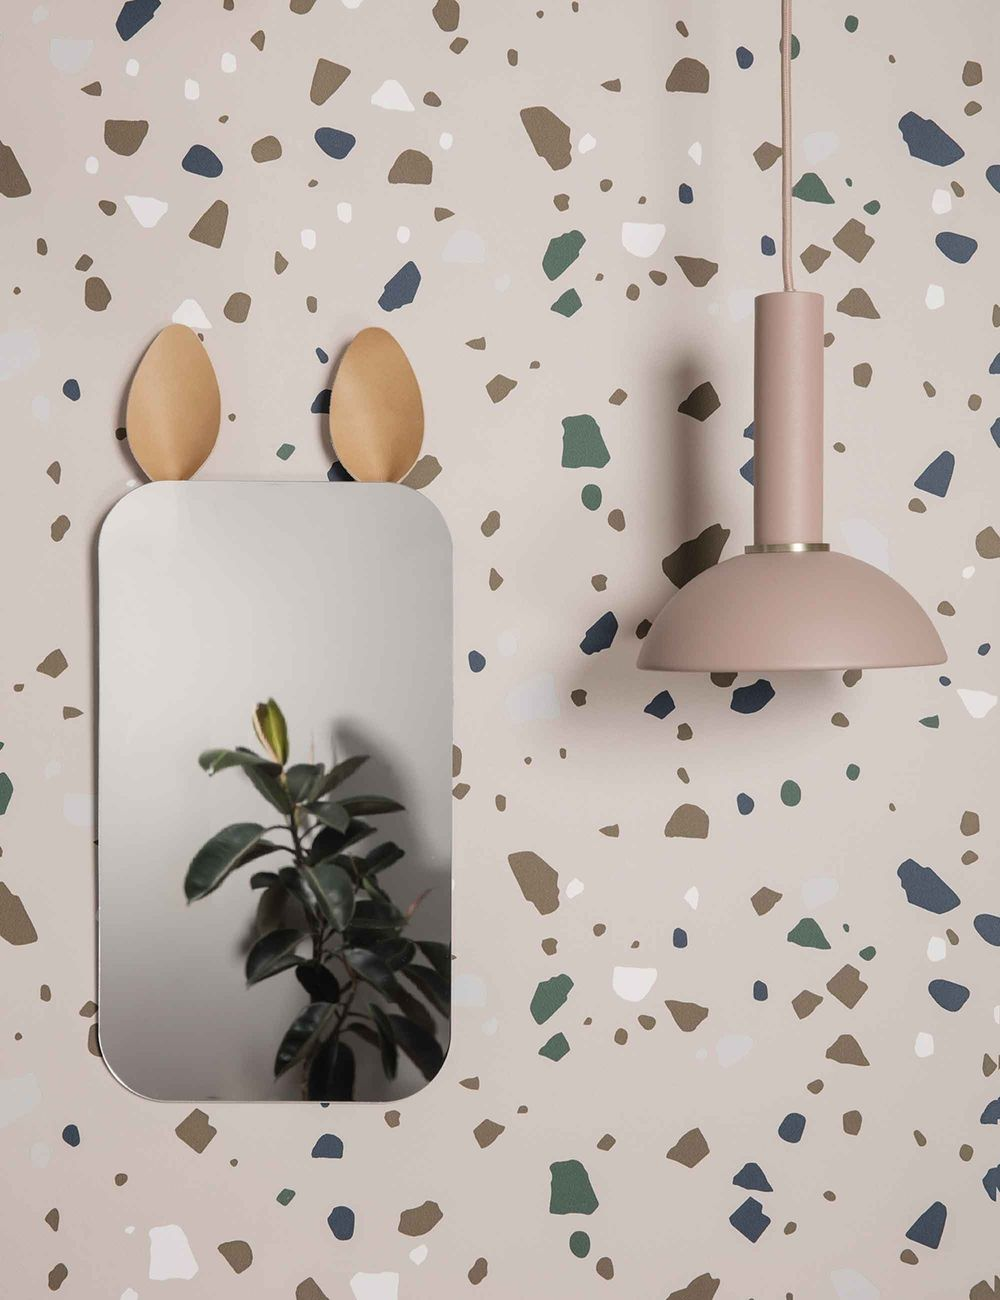 Terrazzo wallpaper from Lulu & Georgia